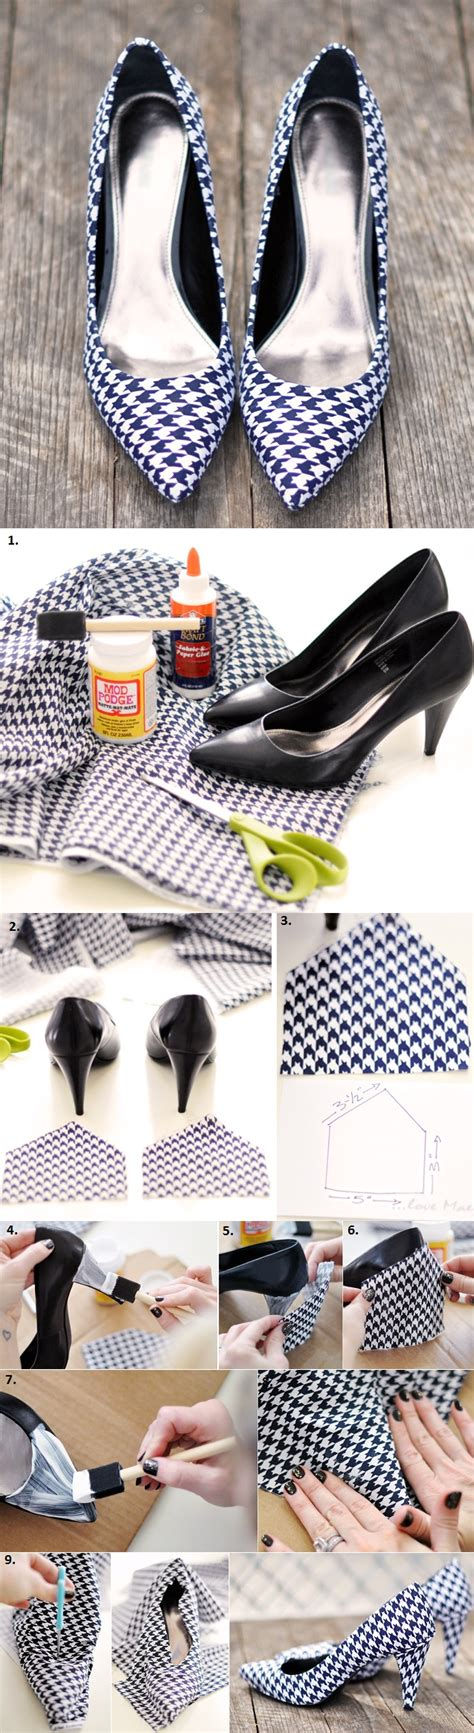 diy fabric shoes stylish shoes covered with fabric diy alldaychic